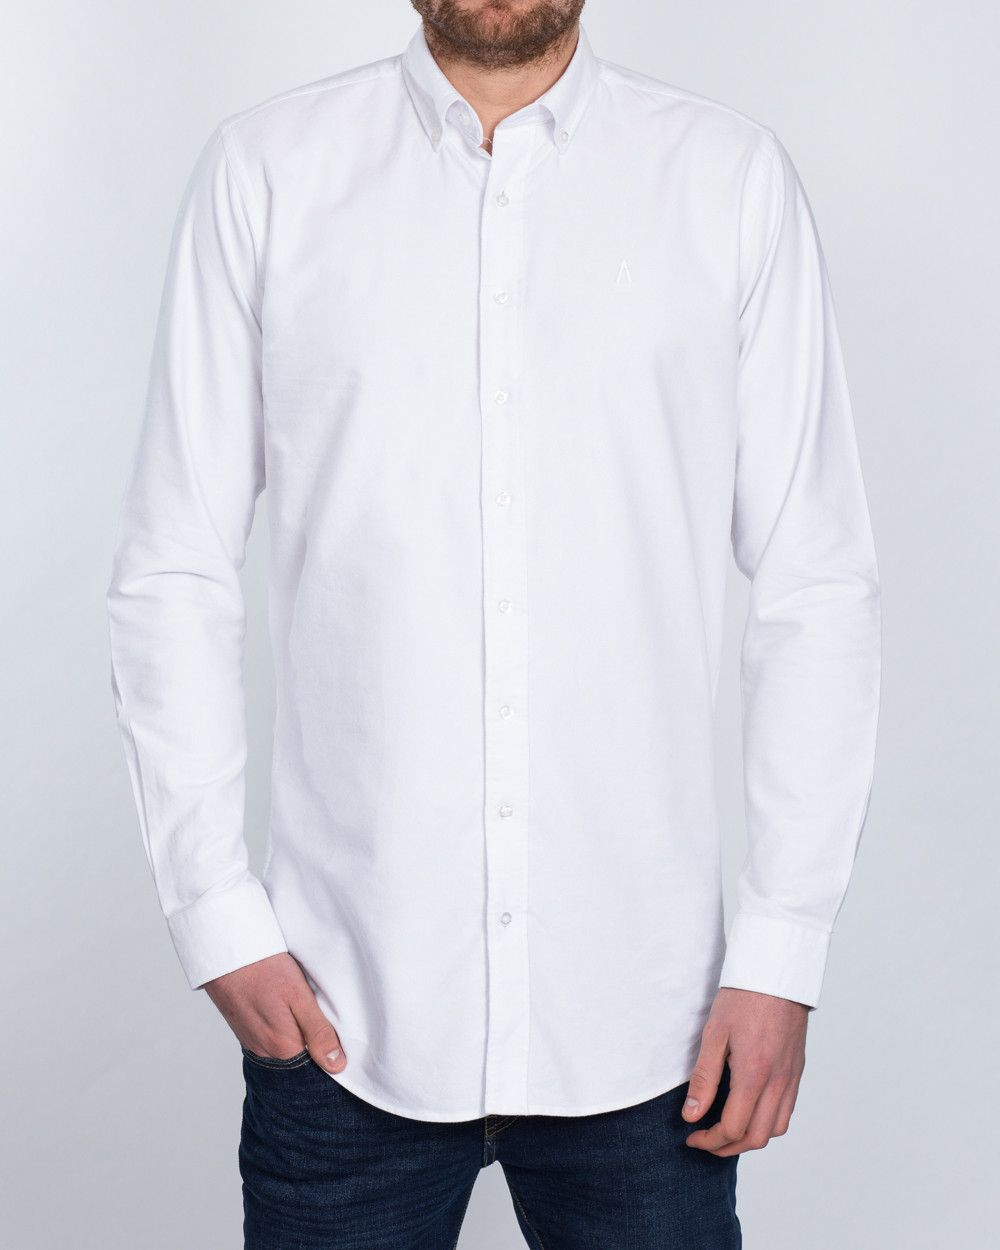 Extra Mens Shirts Tall Men Clothing Shirts